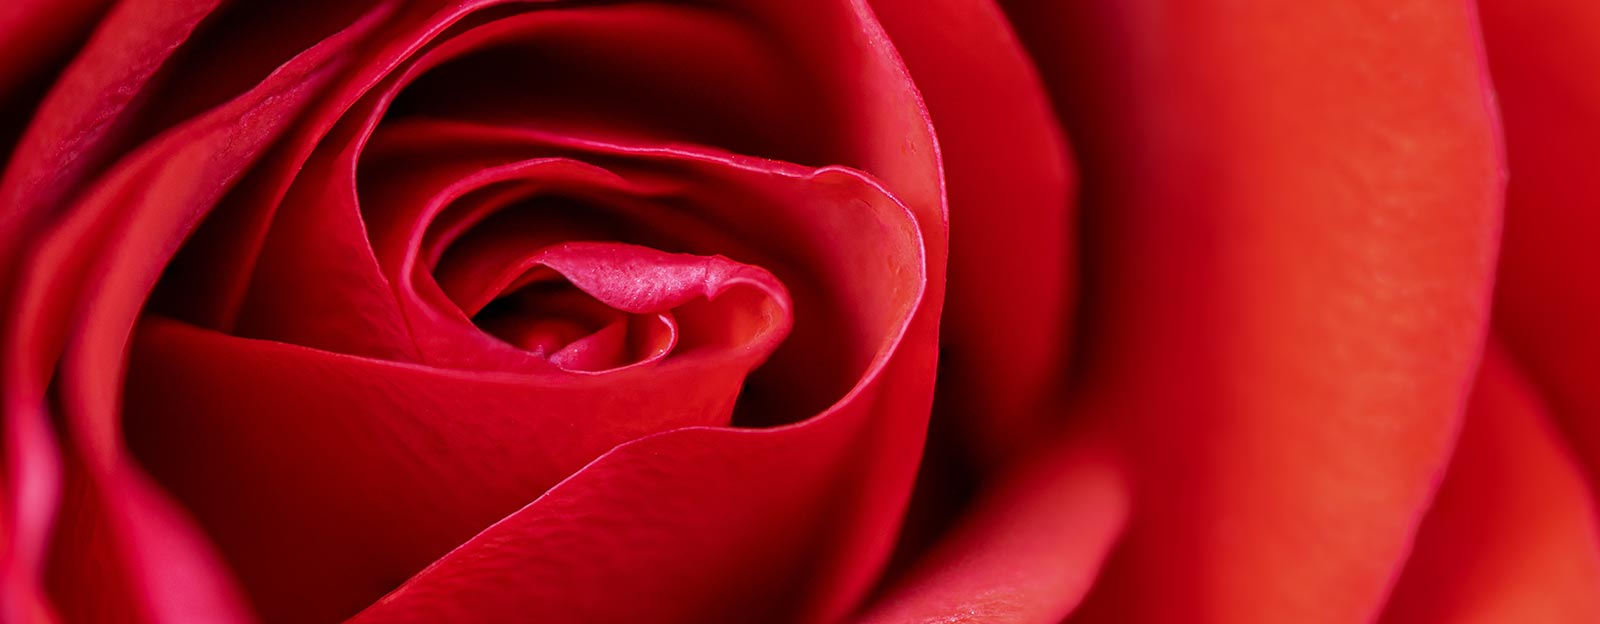 Essential oils for romance - Red rose